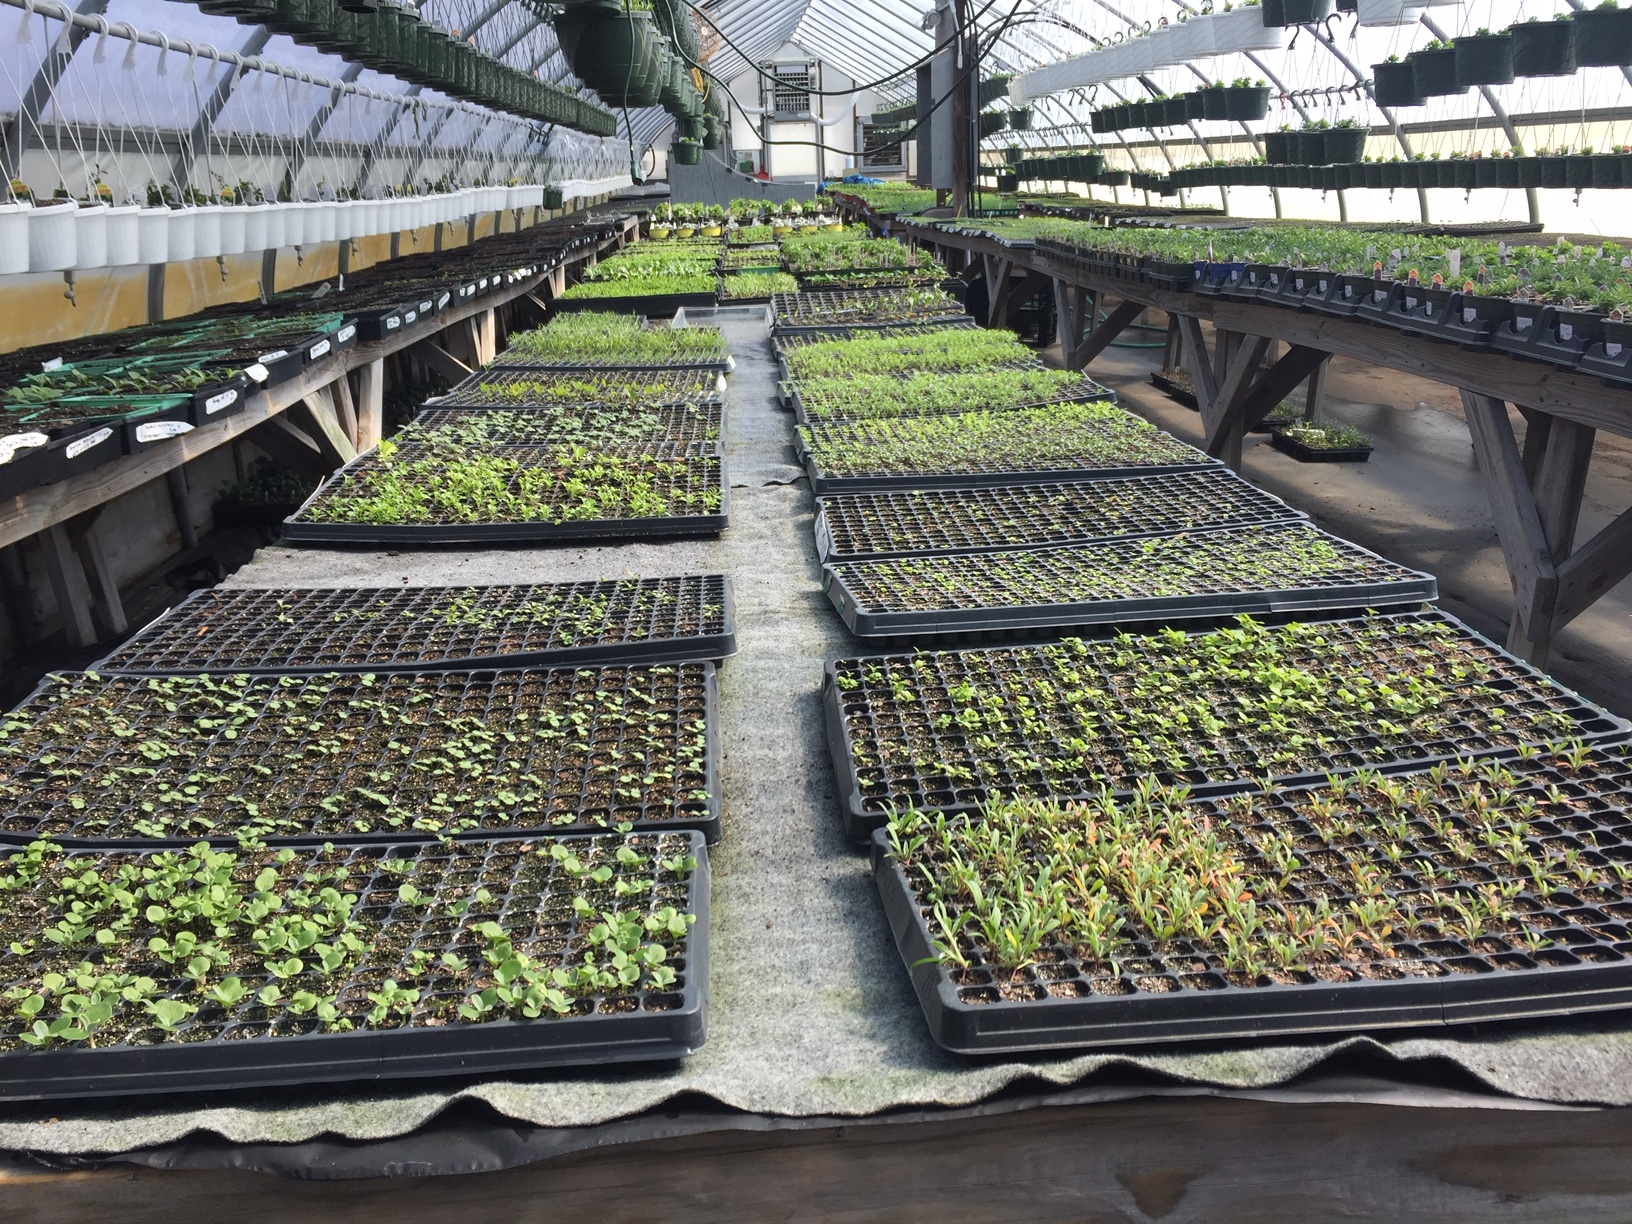 Seedling production using plug trays